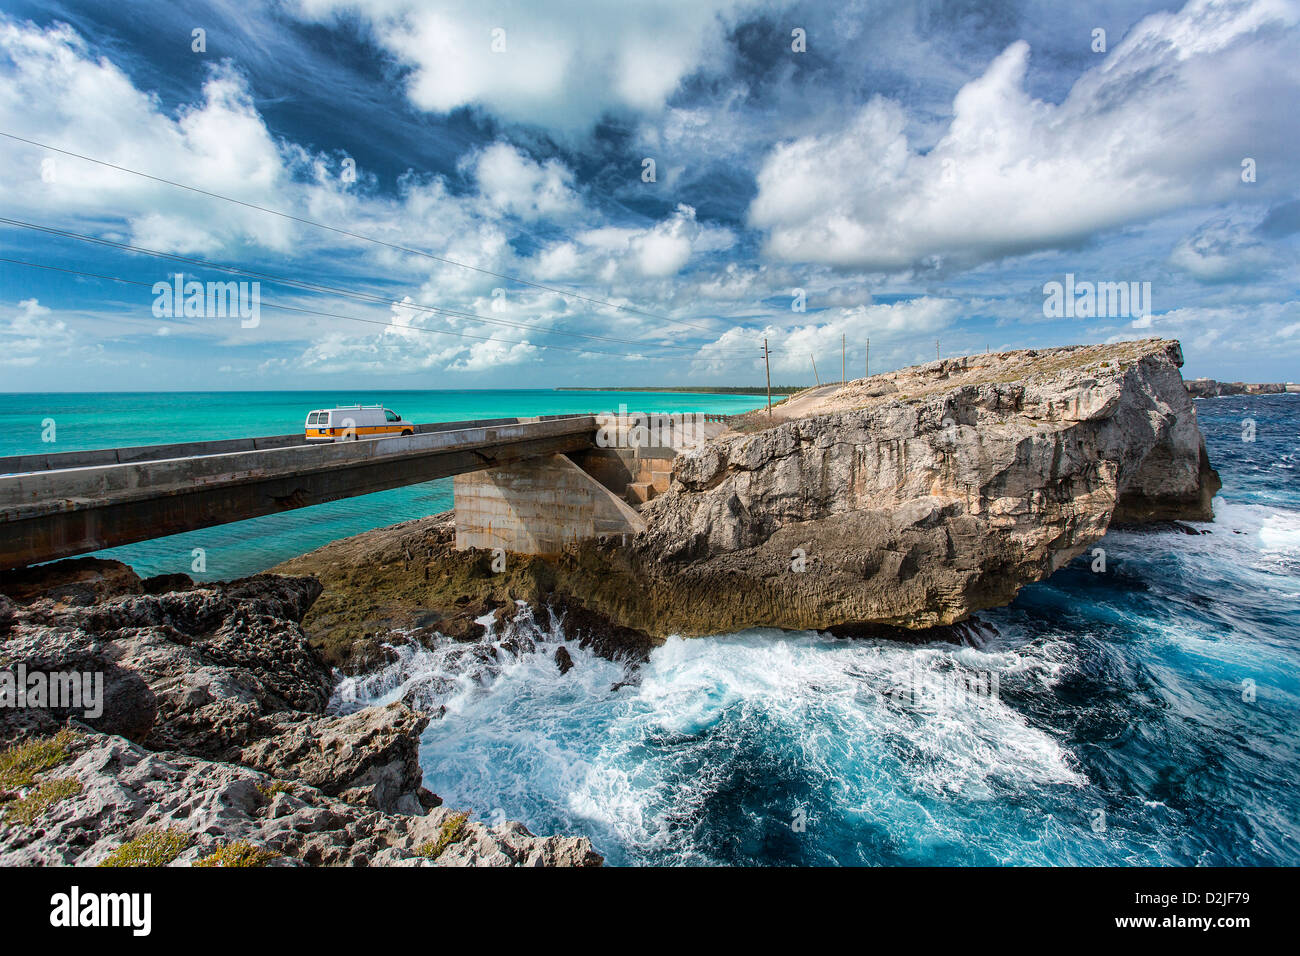 Bahamas, Eleuthera Island ,The Glass Window Bridge - Stock Image